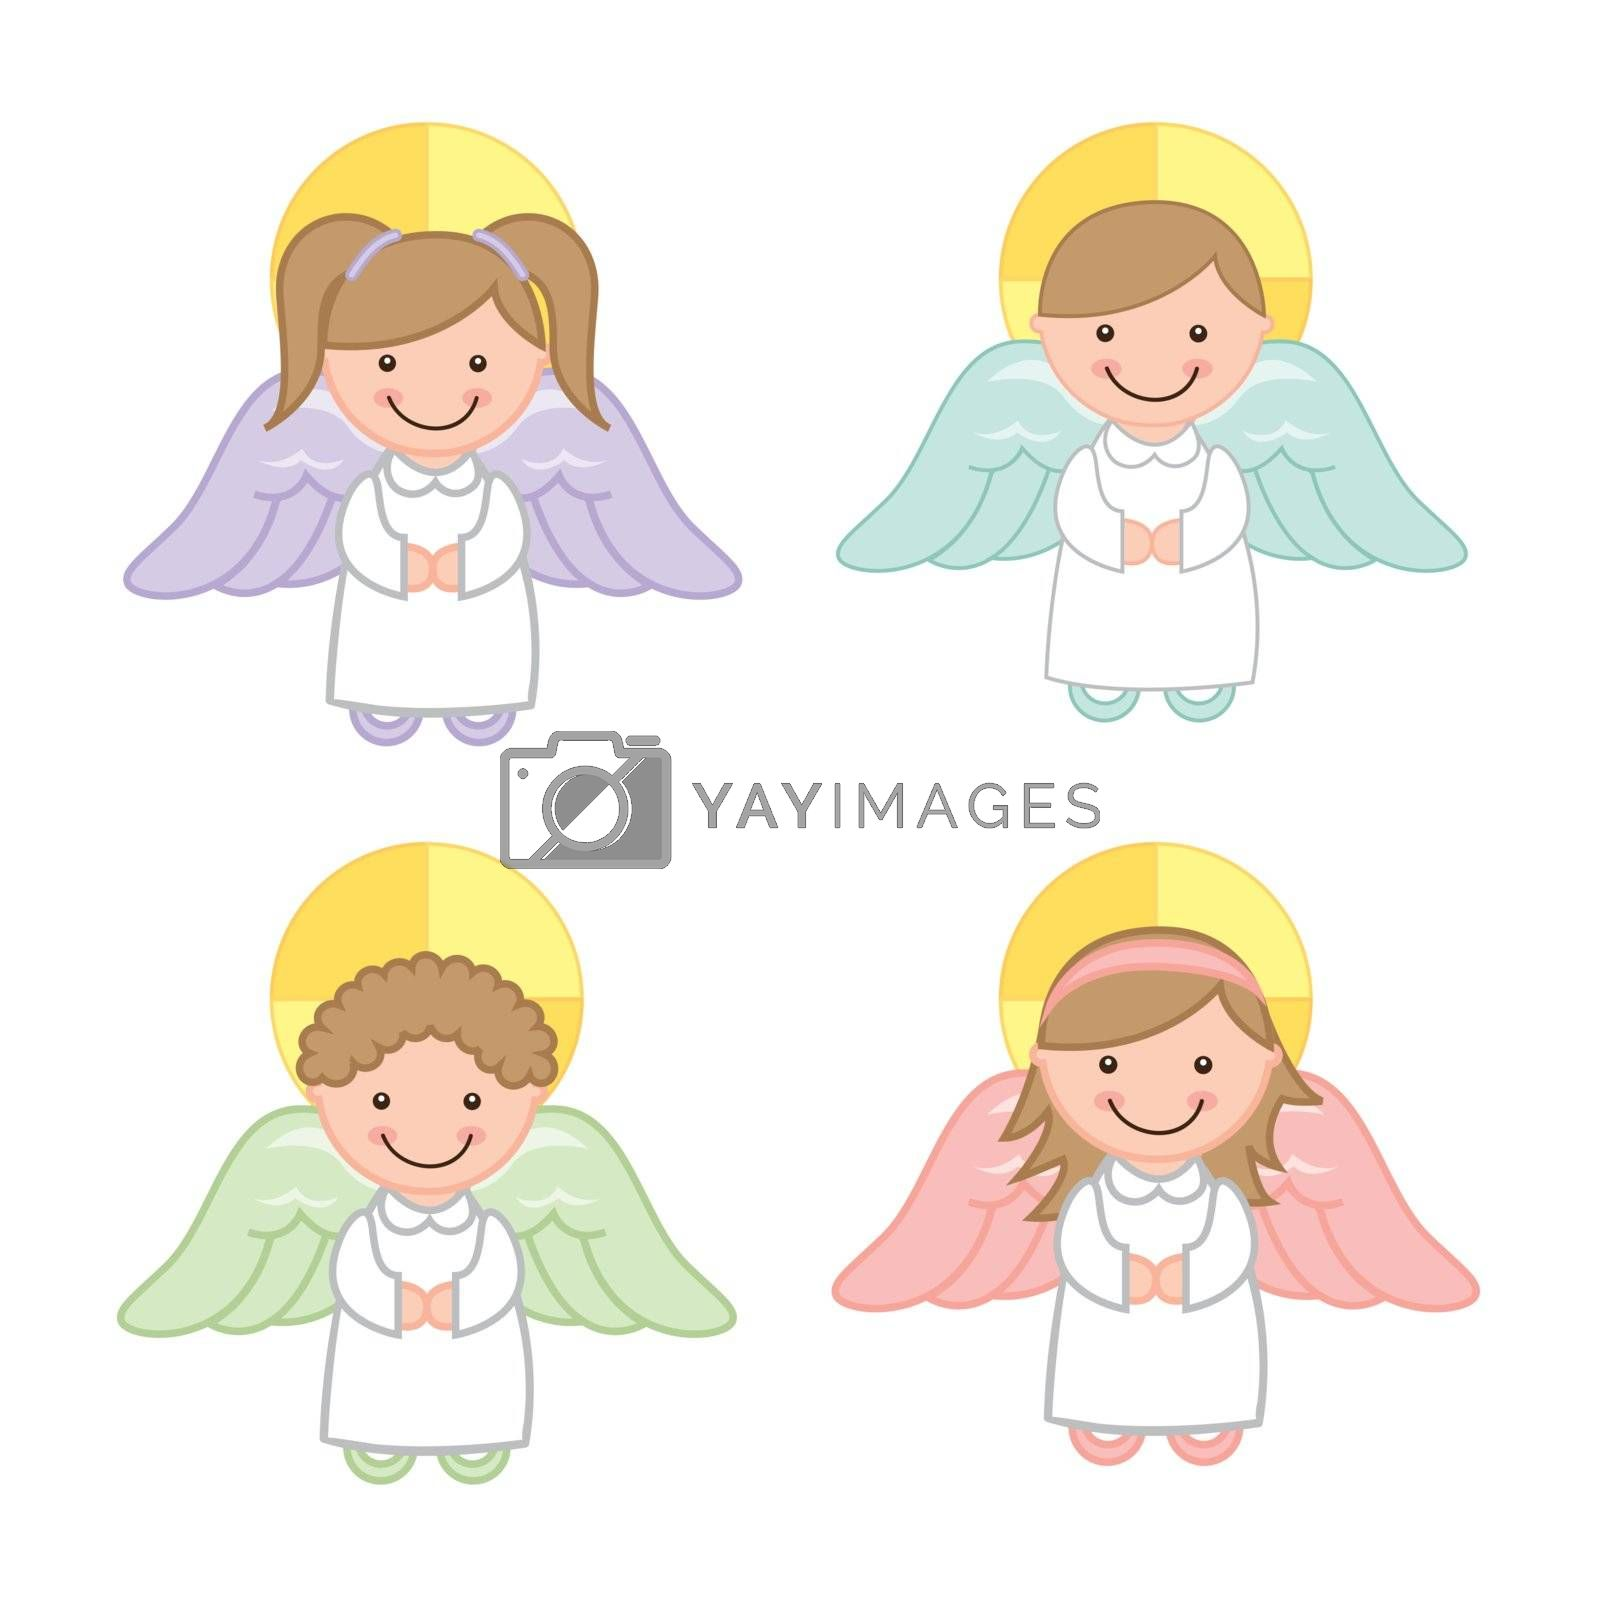 Angel Fish Comic - Angeln Clipart , Free Transparent Clipart - ClipartKey